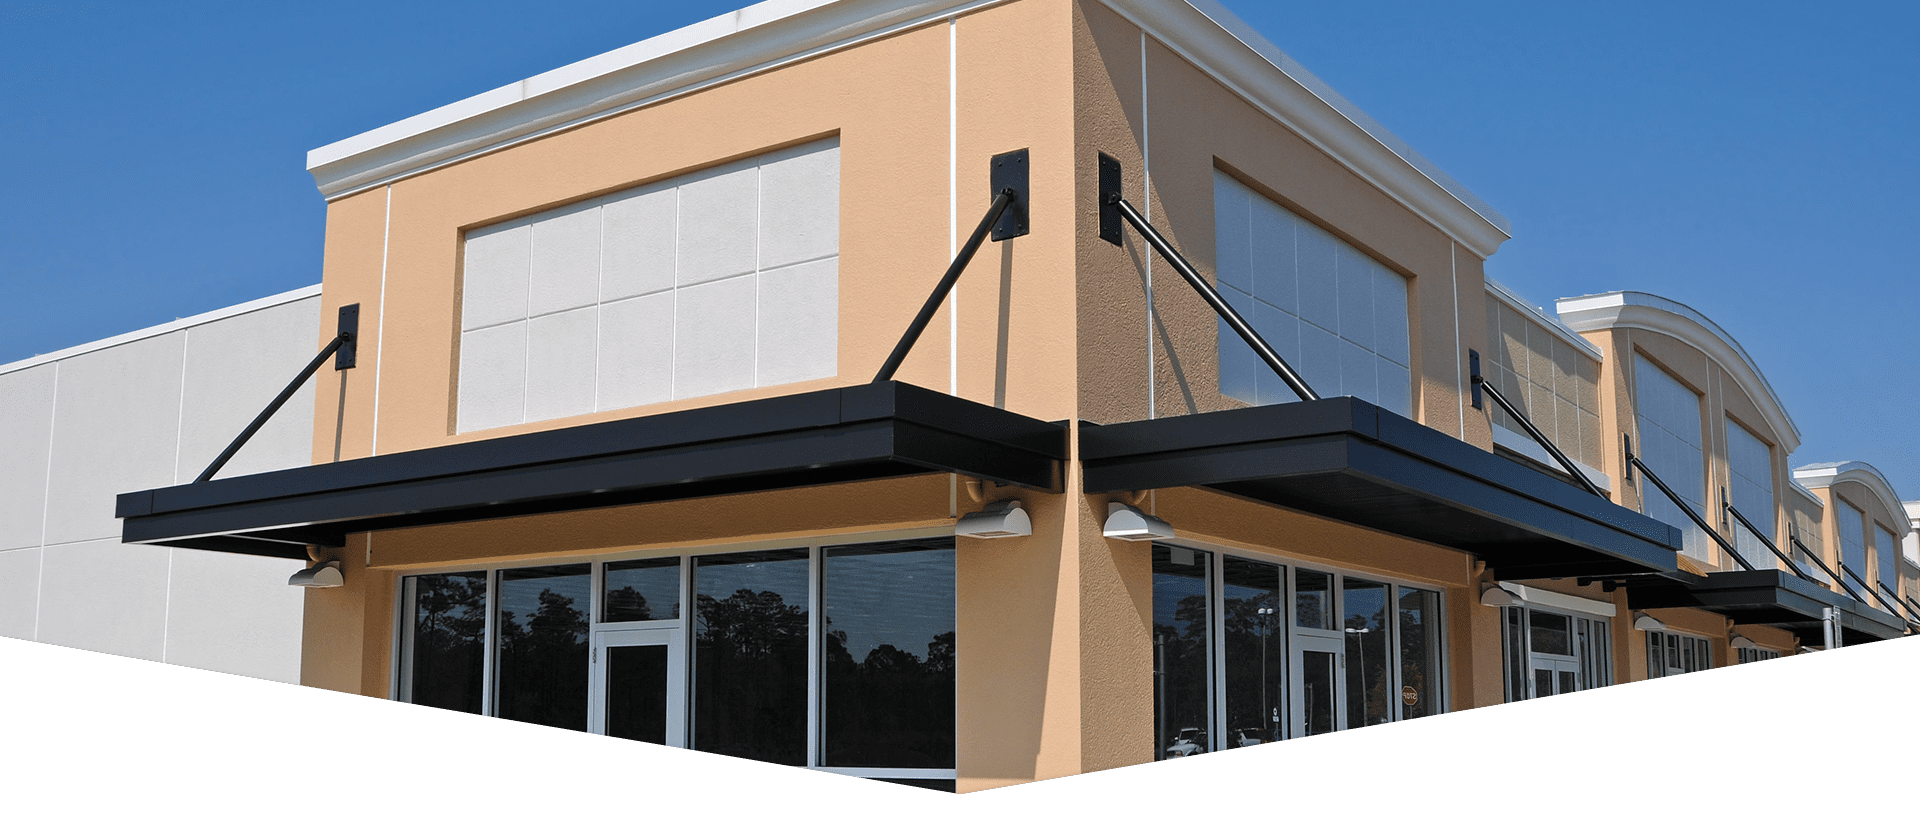 If you are looking for a commercial Roofing company in the Cincinnati area, then don't look past Armor Services